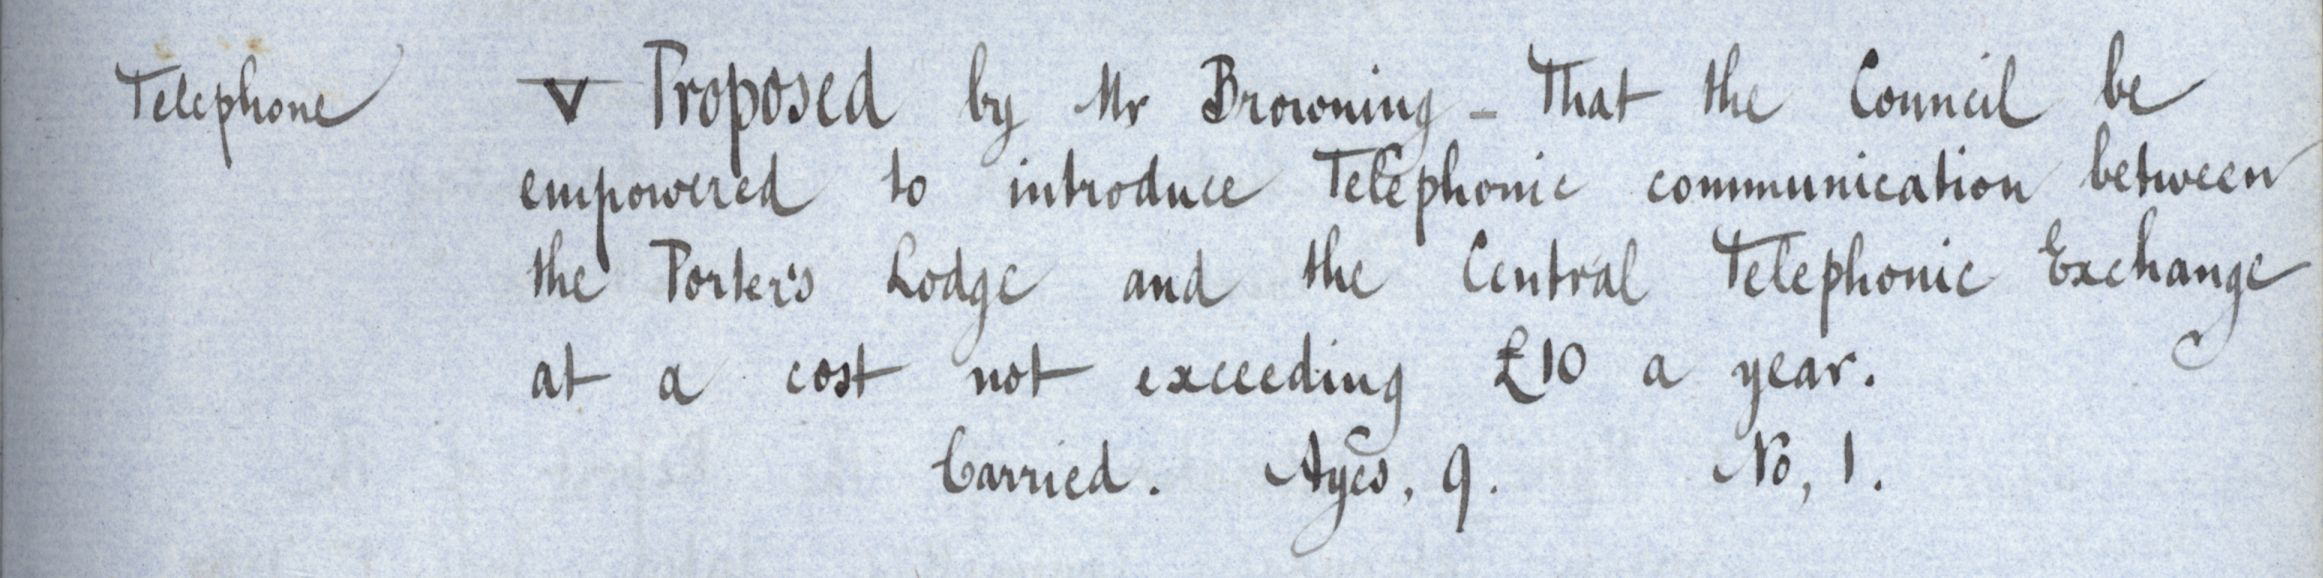 Agreement that the Council be empowered to introduce telephonic communication, Congregation minutes, 5 June 1886. [KCGB/4/1/1/9]